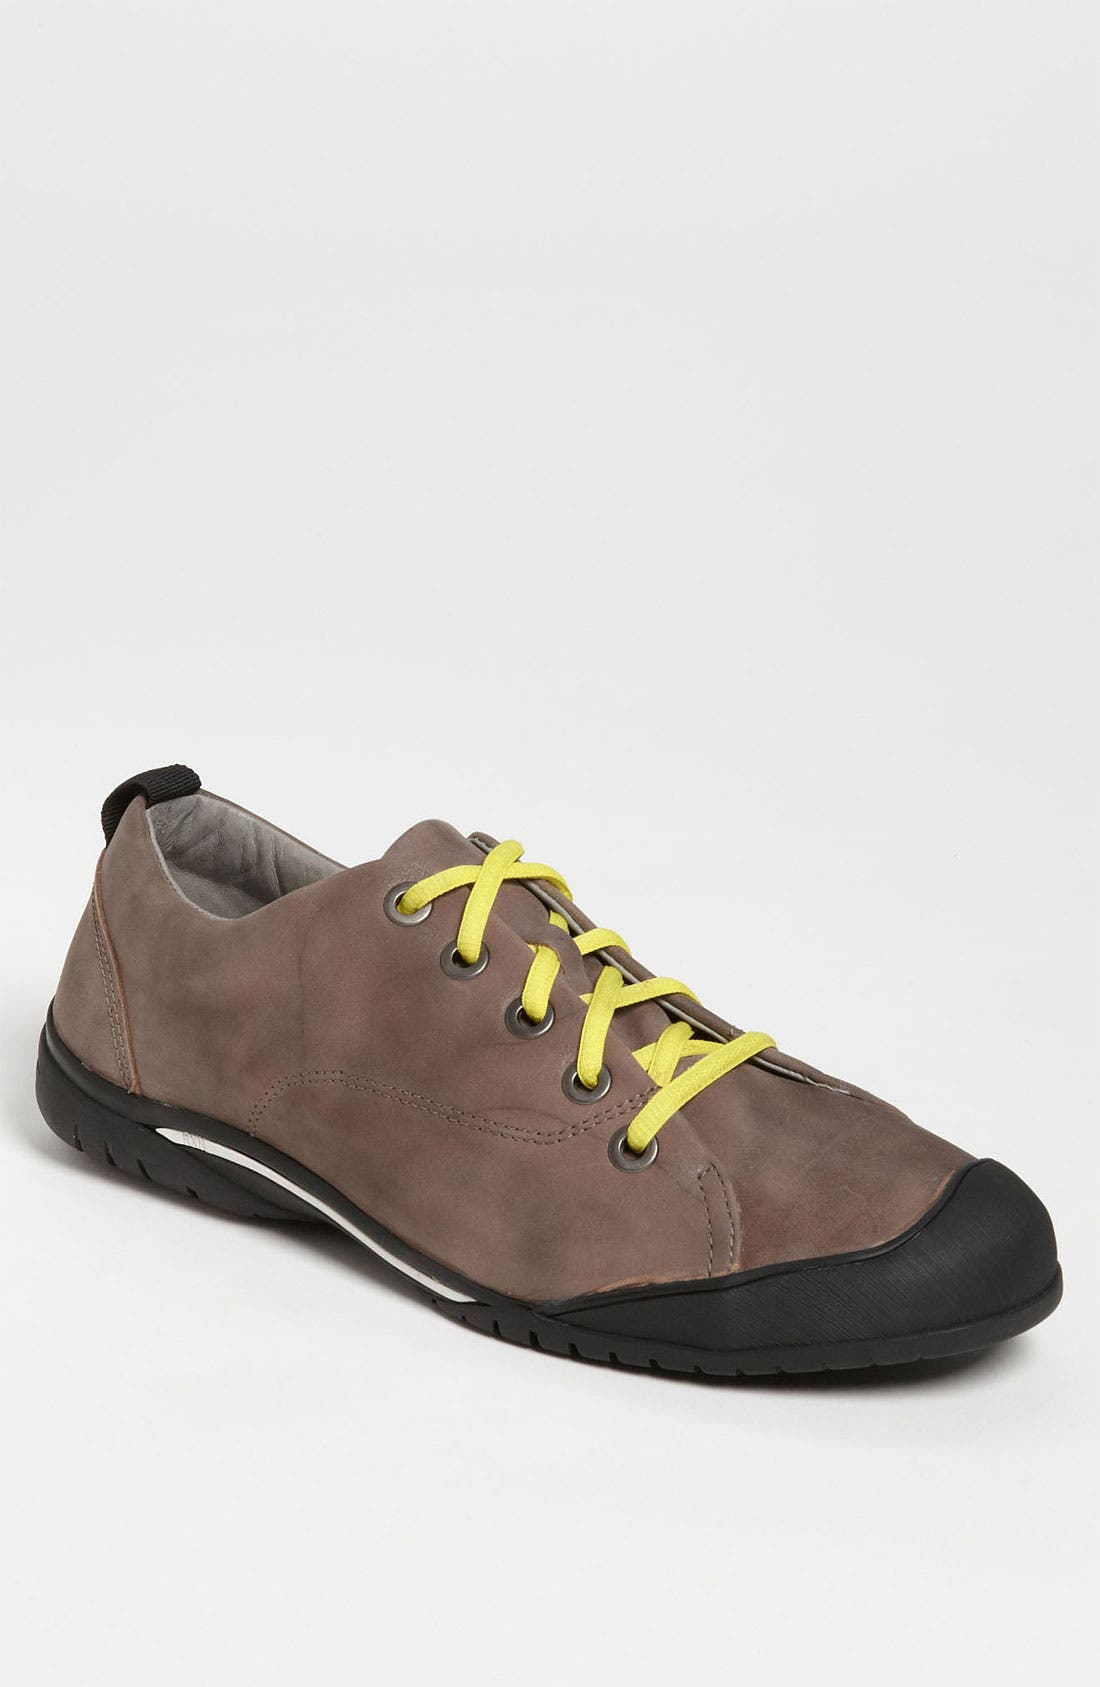 Main Image - Kenneth Cole Reaction 'High Volt-Age' Sneaker